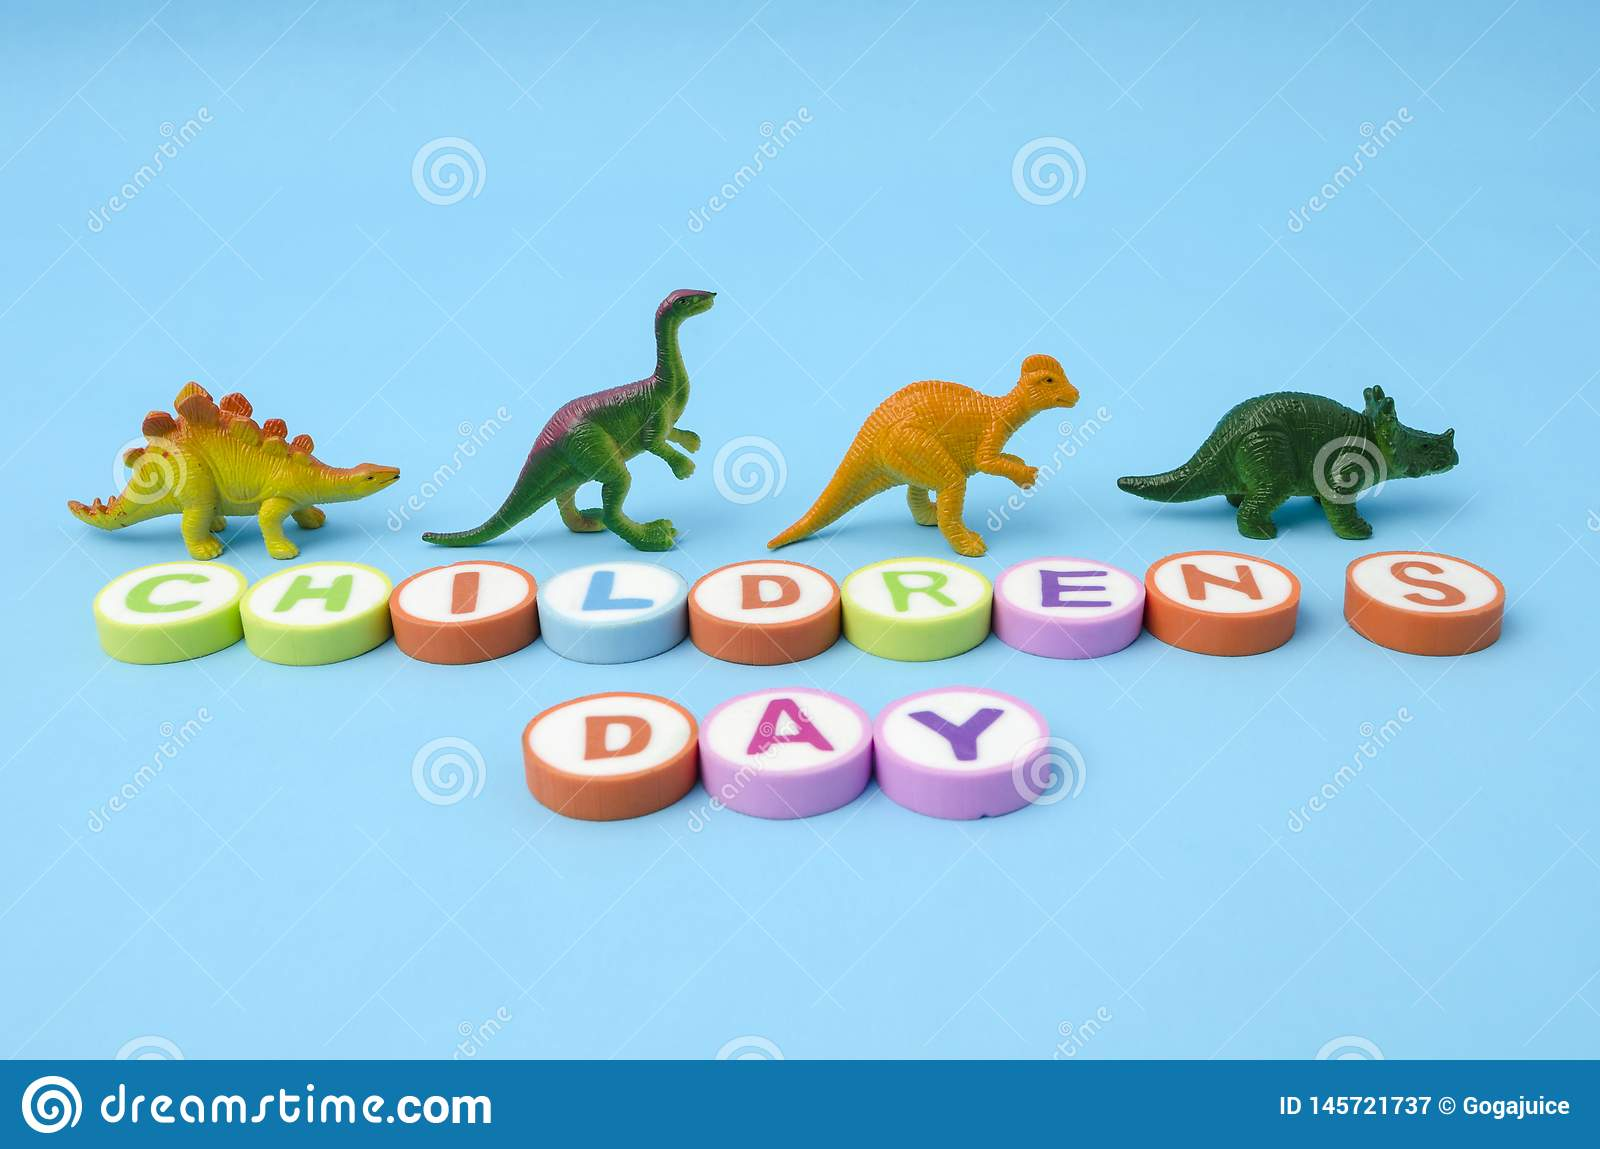 Children`s Day made from colorful letters and plastic dinosaur toys